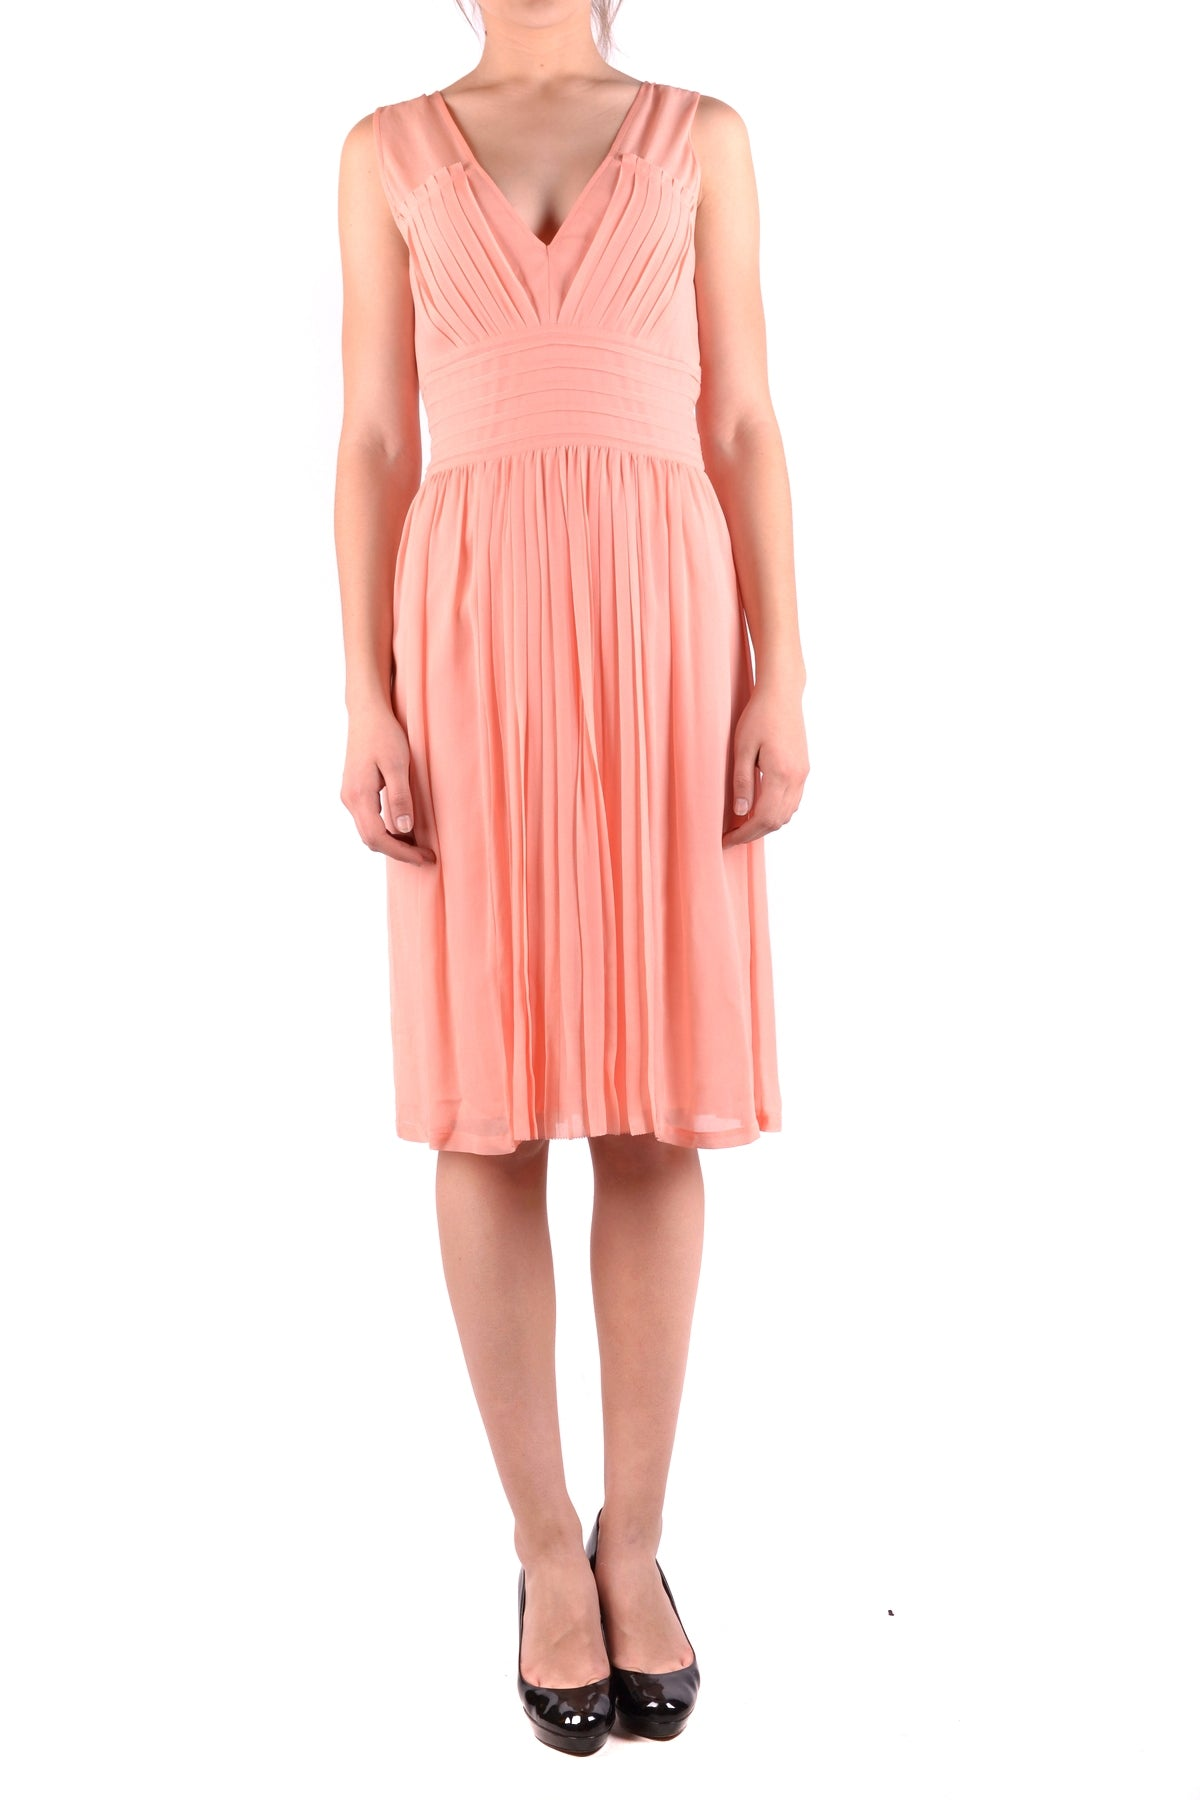 Dress Armani Jeans-Dress - WOMAN-40-Product Details Terms: New With LabelYear: 2017Main Color: CoralSeason: Spring / SummerMade In: ChinaSize: ItGender: WomanClothing Type: TaglieurComposition: Viscose 100%-Keyomi-Sook